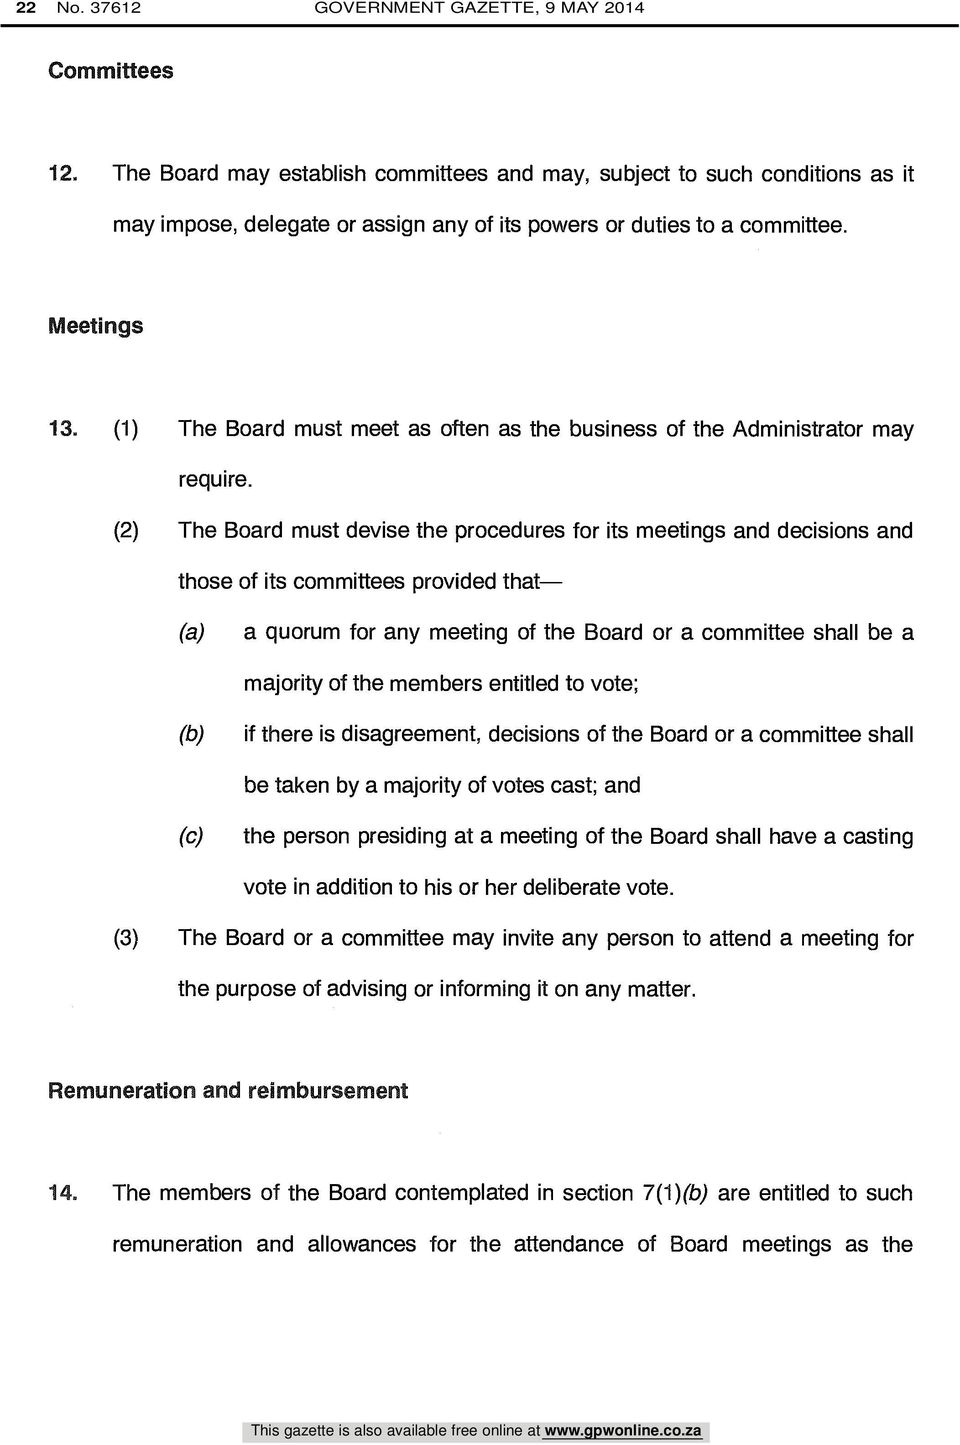 (1) The Board must meet as often as the business of the Administrator may require.